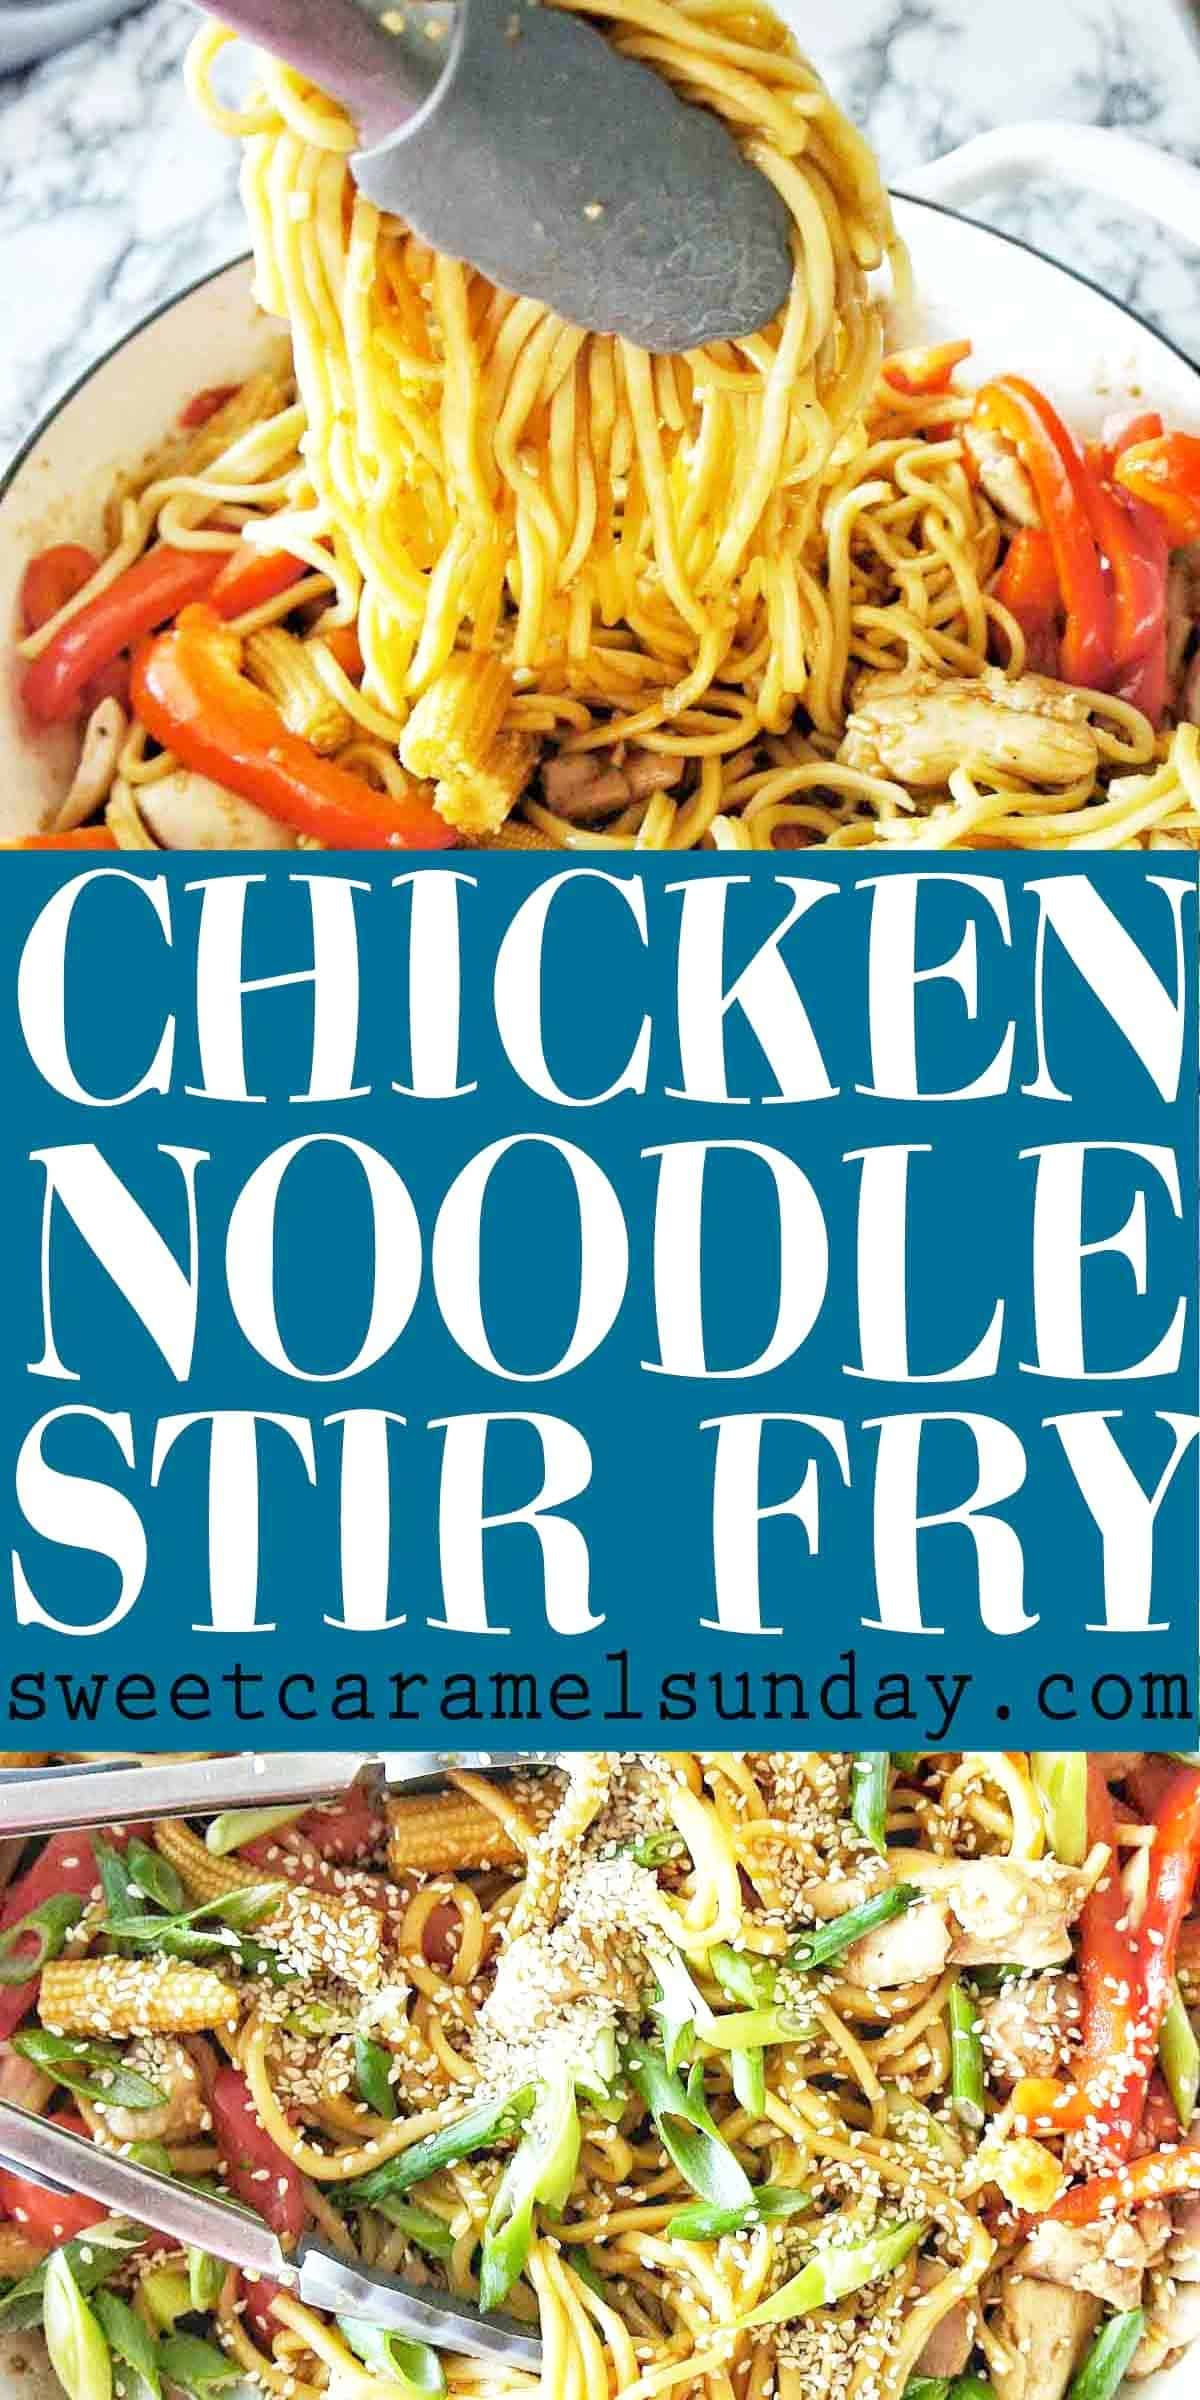 Chicken Noodle Stir Fry with text overlay